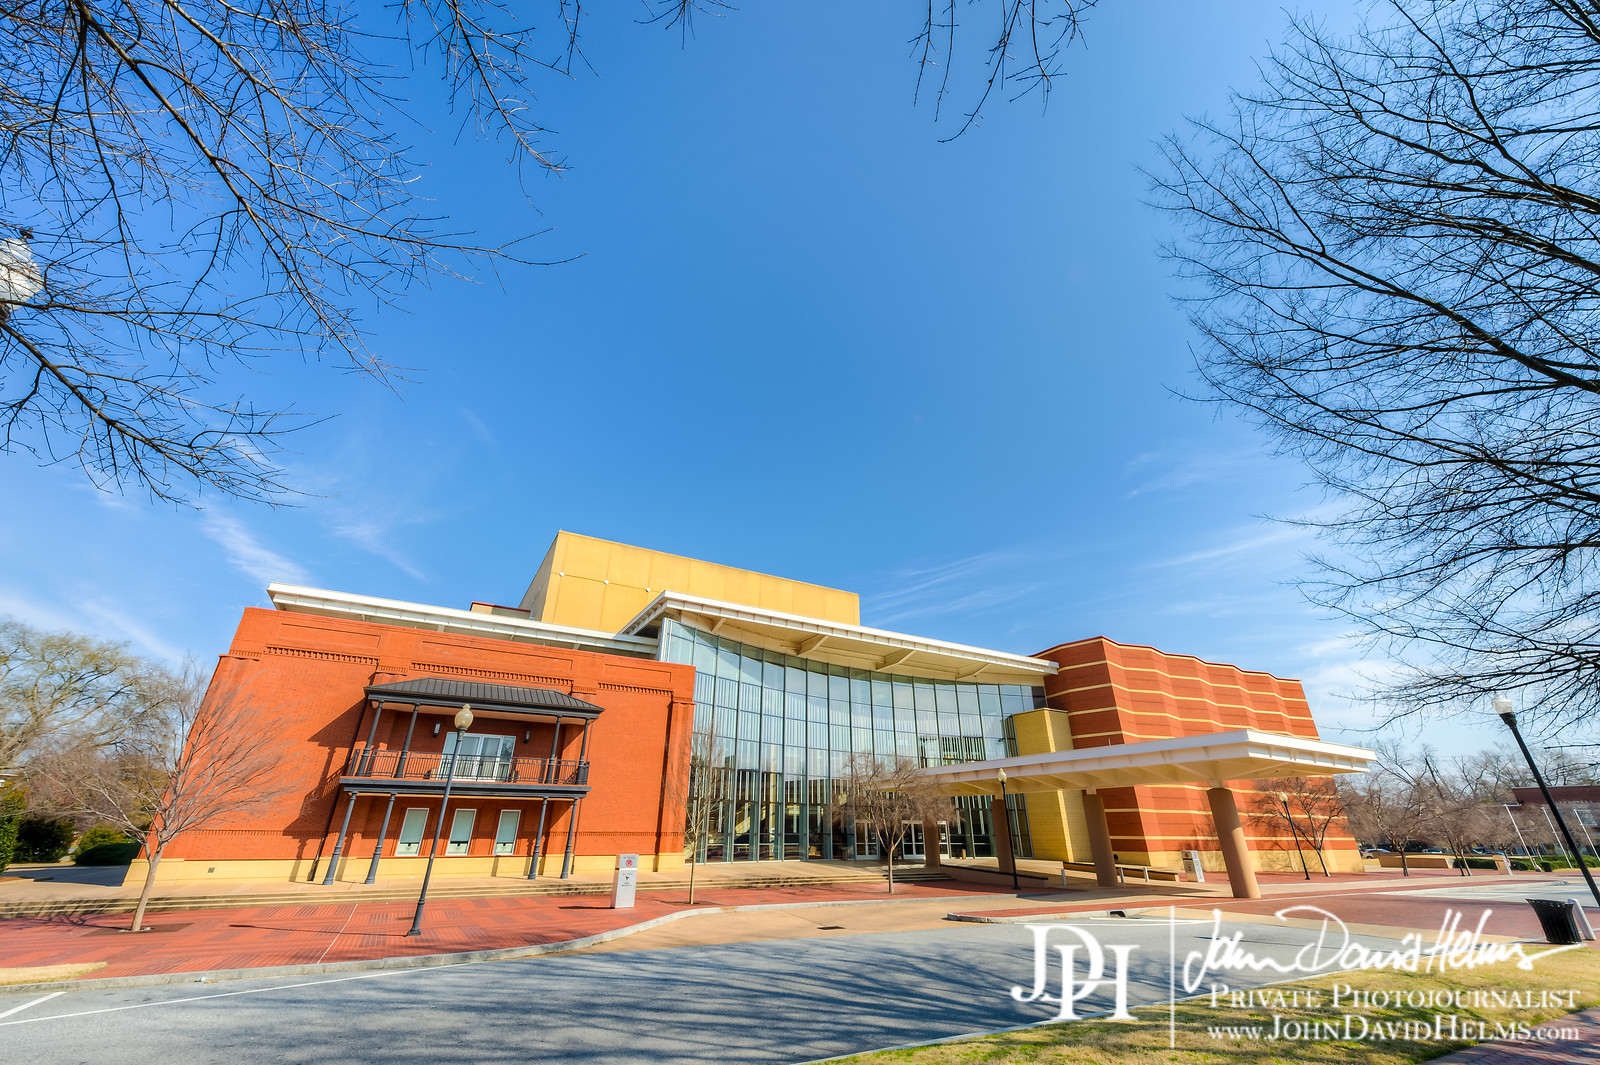 """Columbus State University River Center for the Performing Arts building, one block from the Marriott Columbus, GA, March 2013, photo by John David Helms  <a href=""""http://www.JohnDavidHelms.com"""">http://www.JohnDavidHelms.com</a>"""